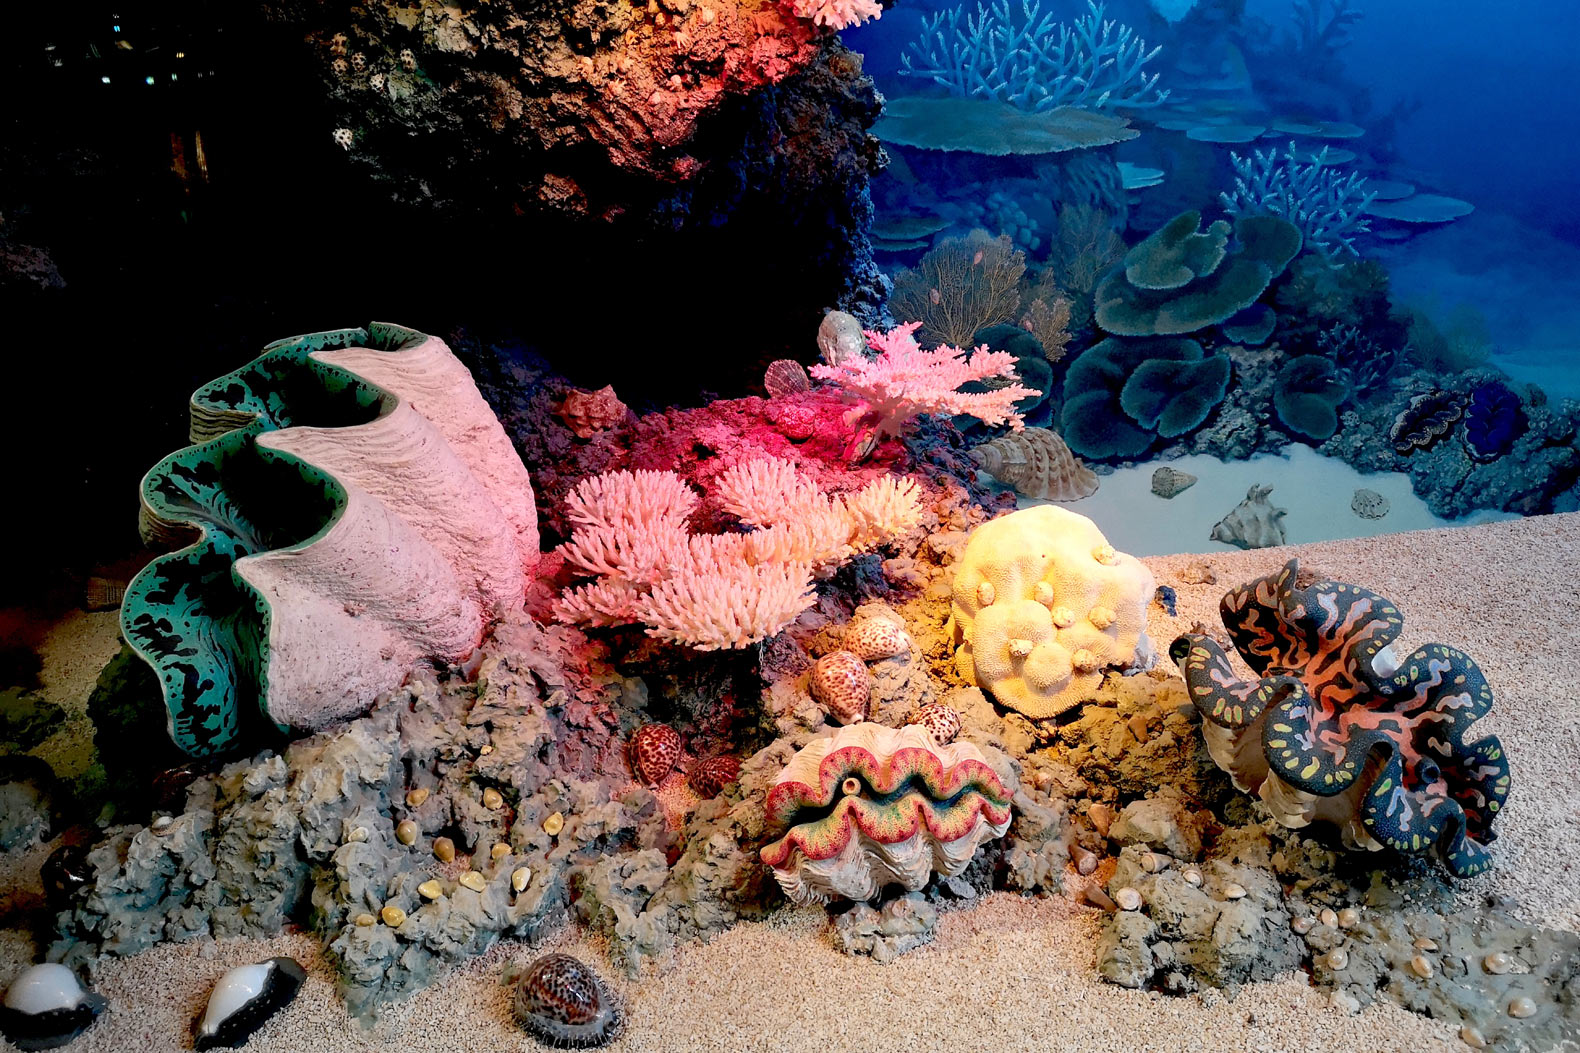 New innovations in geoengineering are needed to save the coral reefs